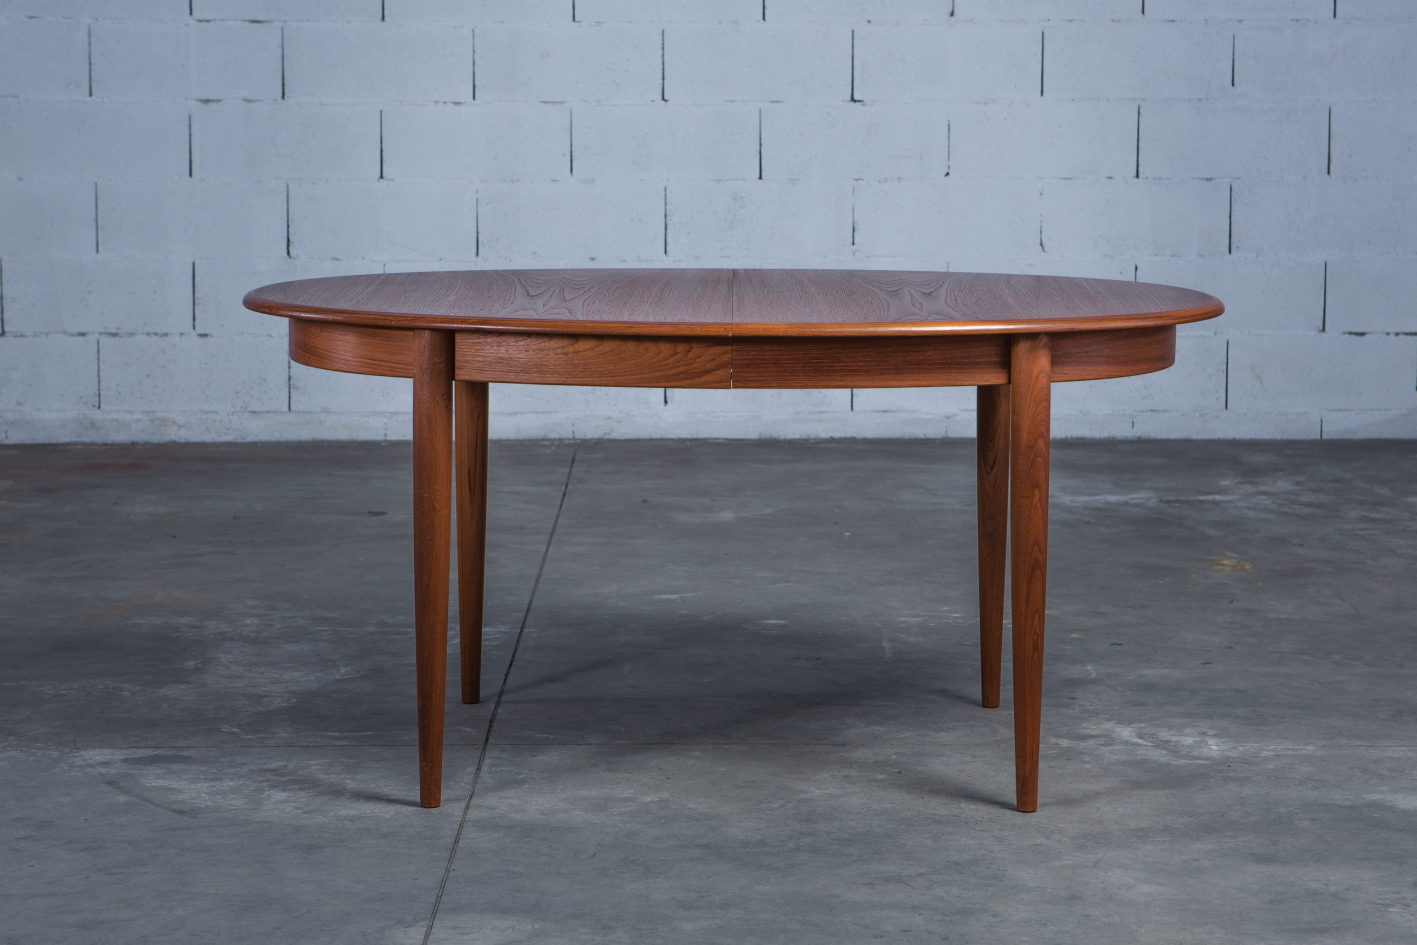 Extendable 1960s danish oval dining table - Gudme Mobelfabrik - Table without extensions